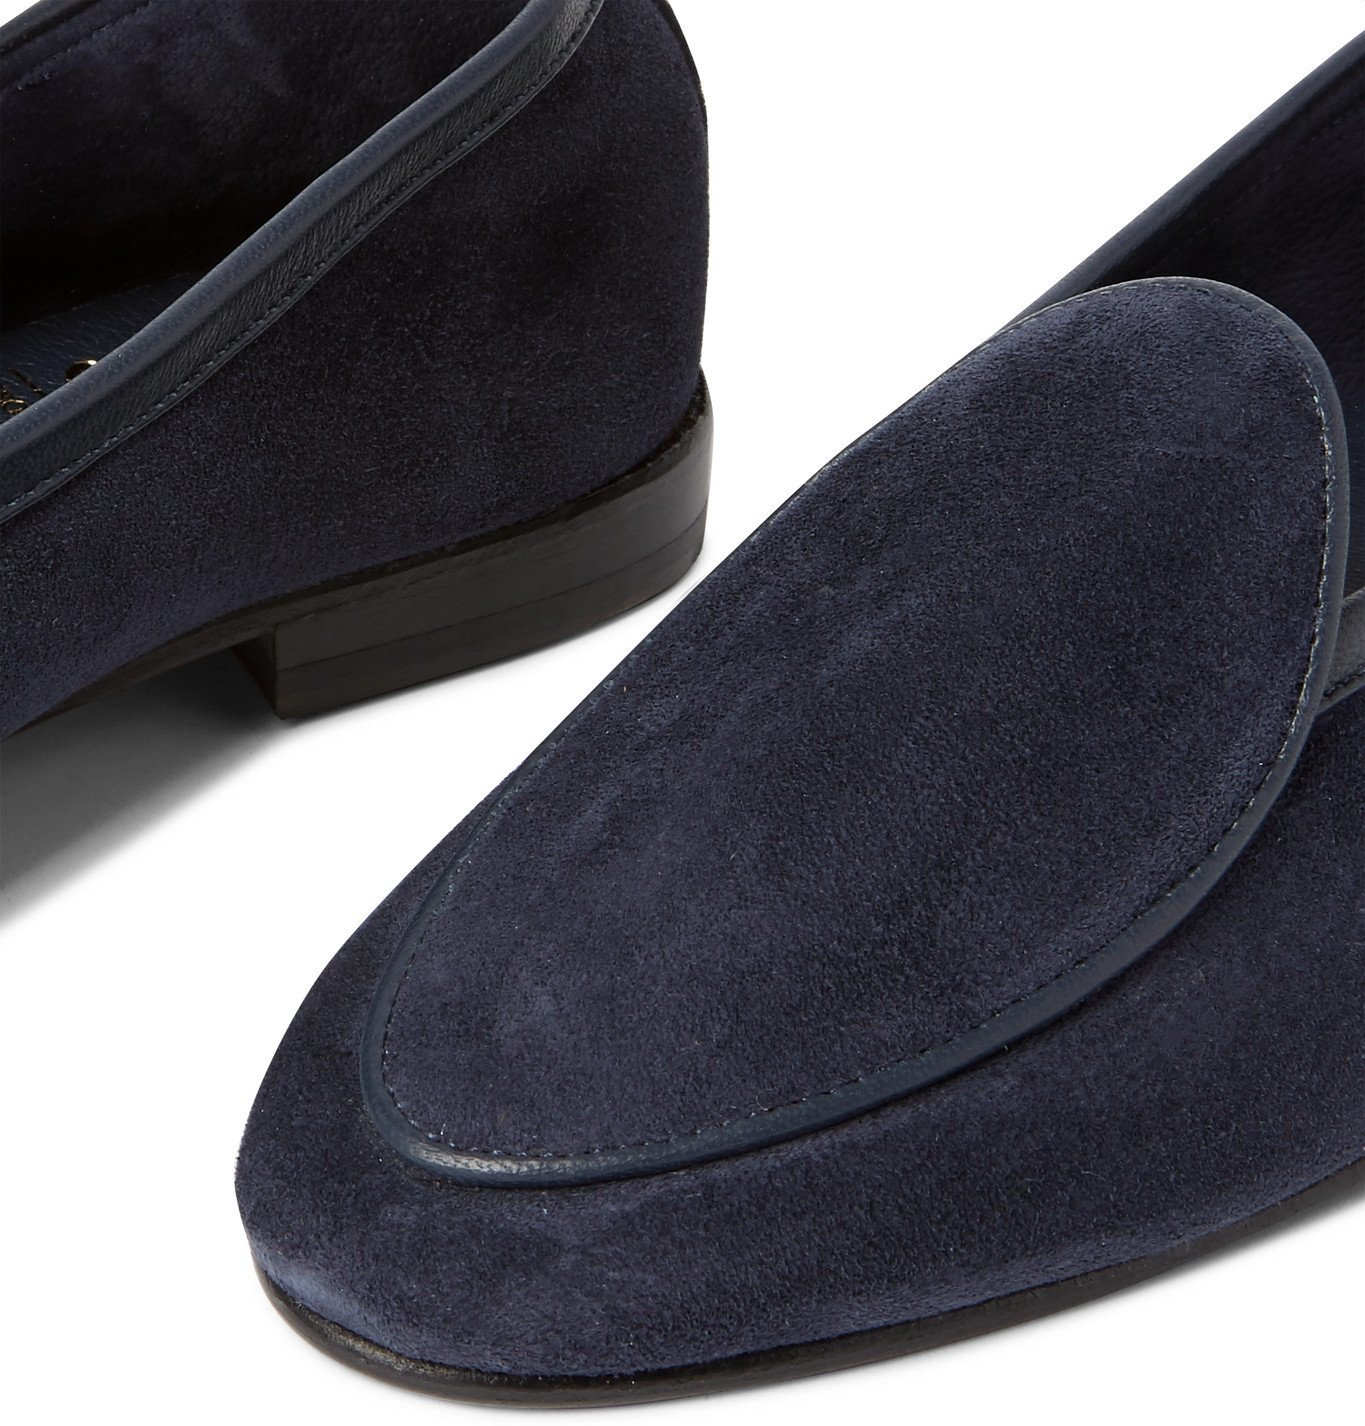 George Cleverley - Hampton Leather-Trimmed Suede Loafers - Blue